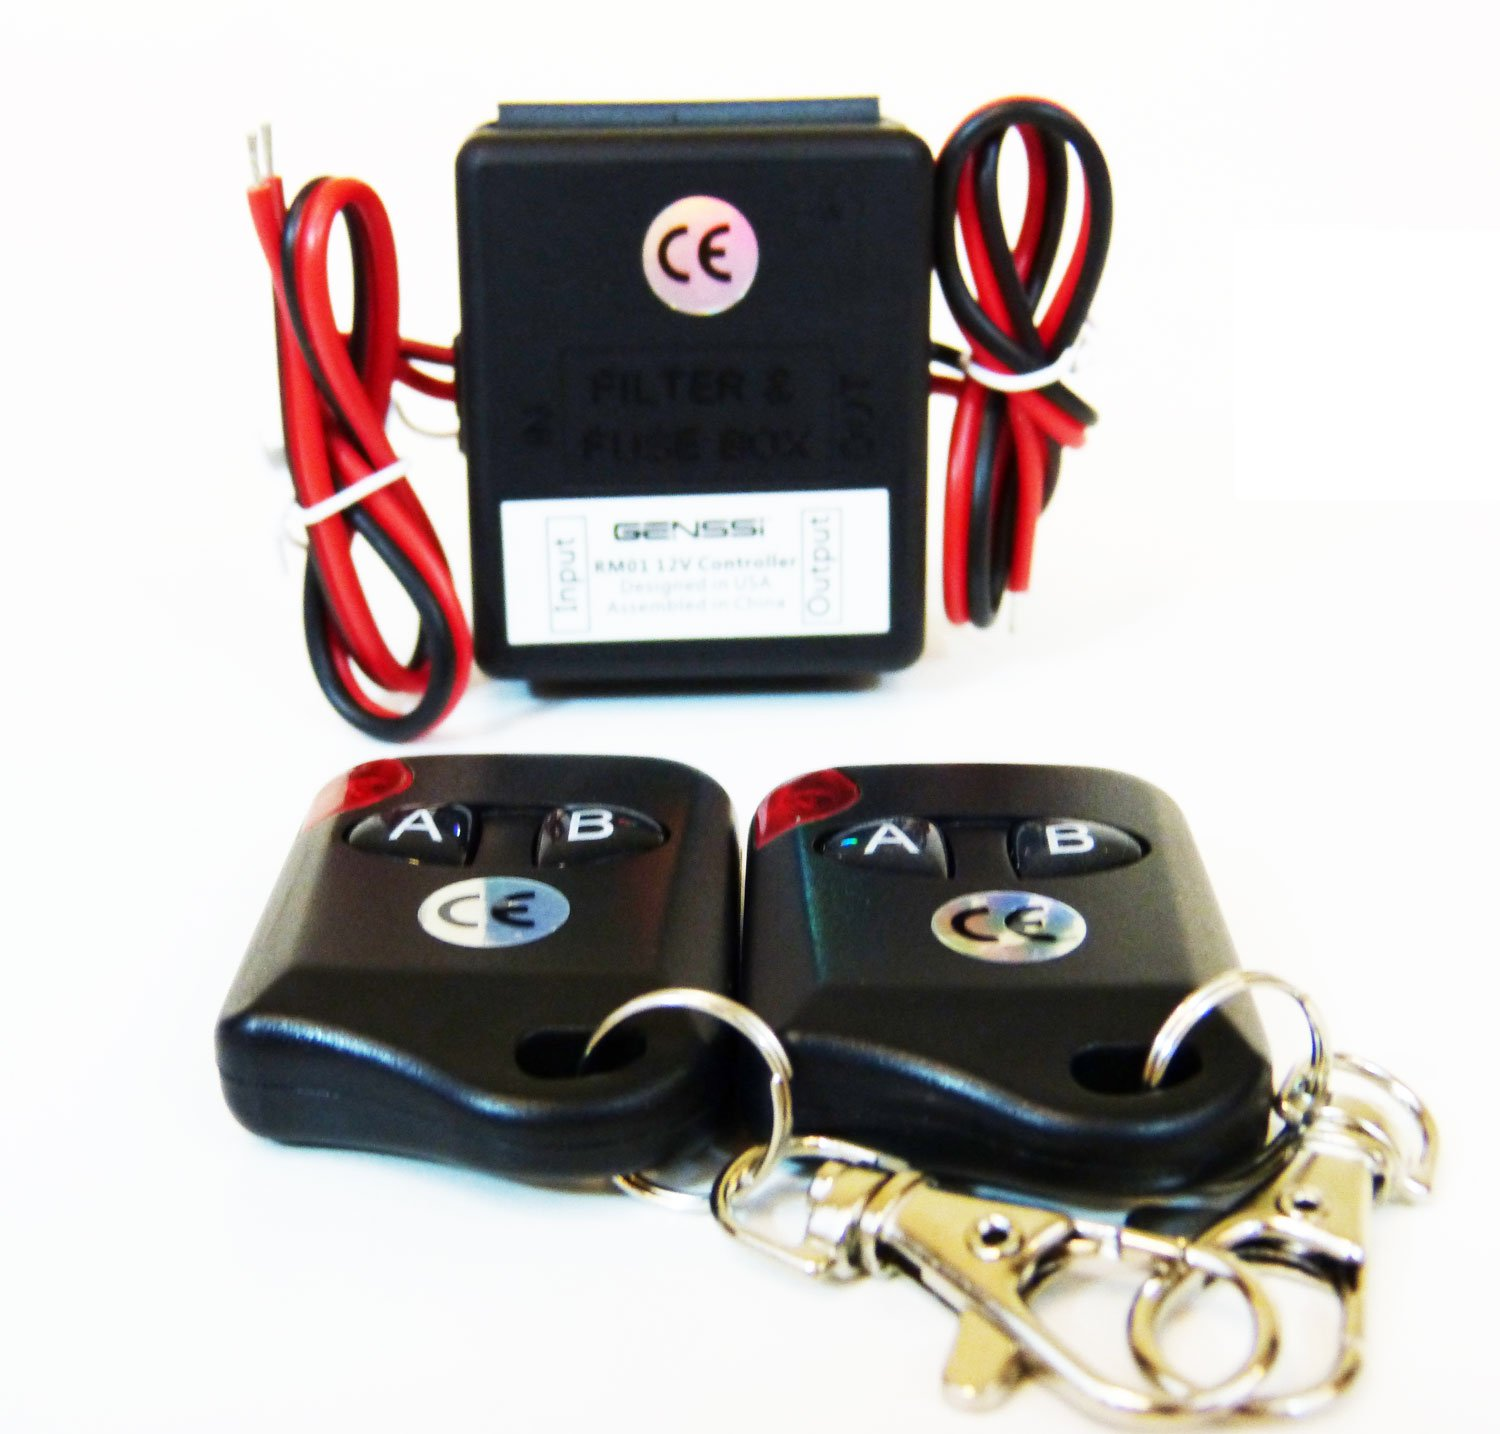 GENSSI 12V Wireless On/Off Transmitter Controller 2 Remotes (1 Channel 2 remote) RM01